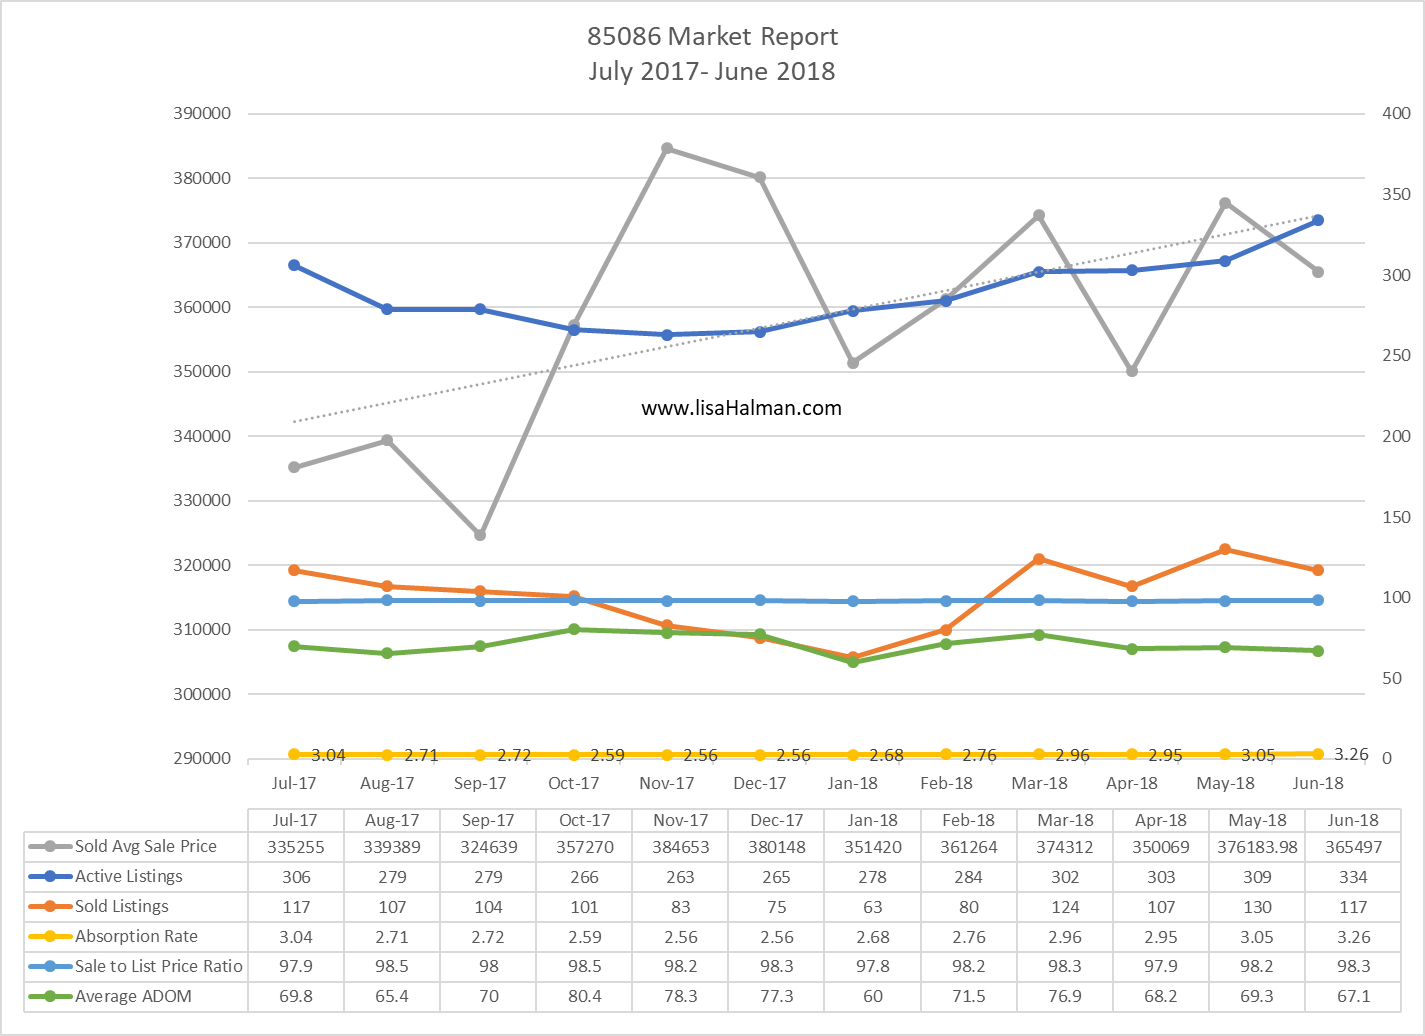 85086 Market Report June 2018